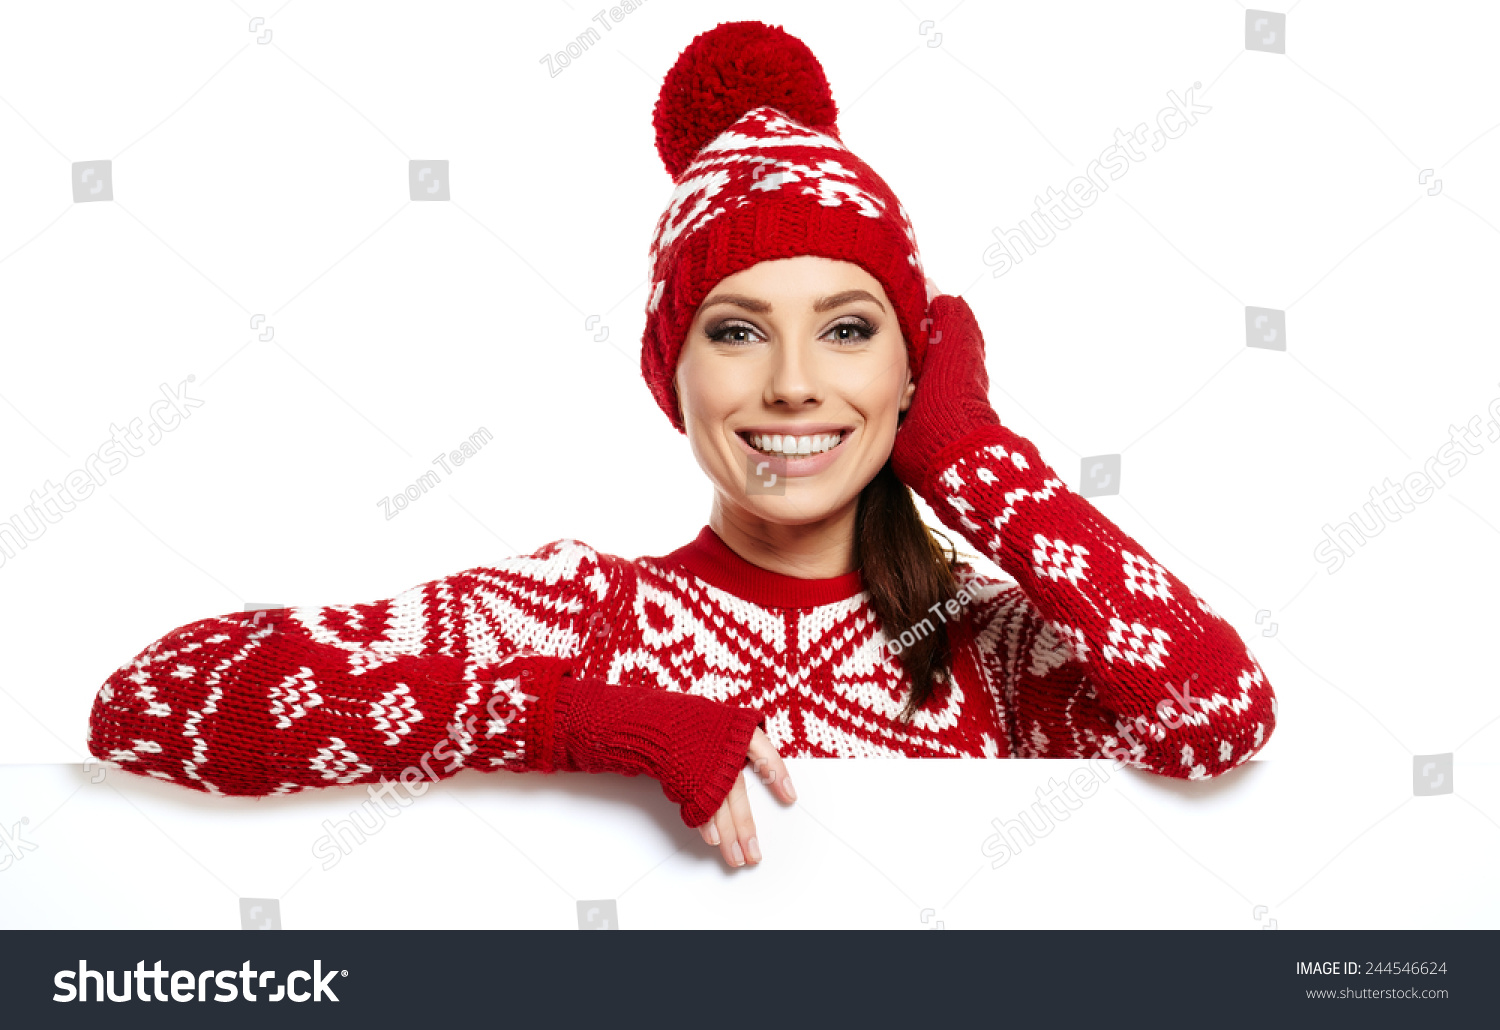 3001c34fb511 Winter Girl Happy Smile Hold Sale Stock Photo (Edit Now) 244546624 ...